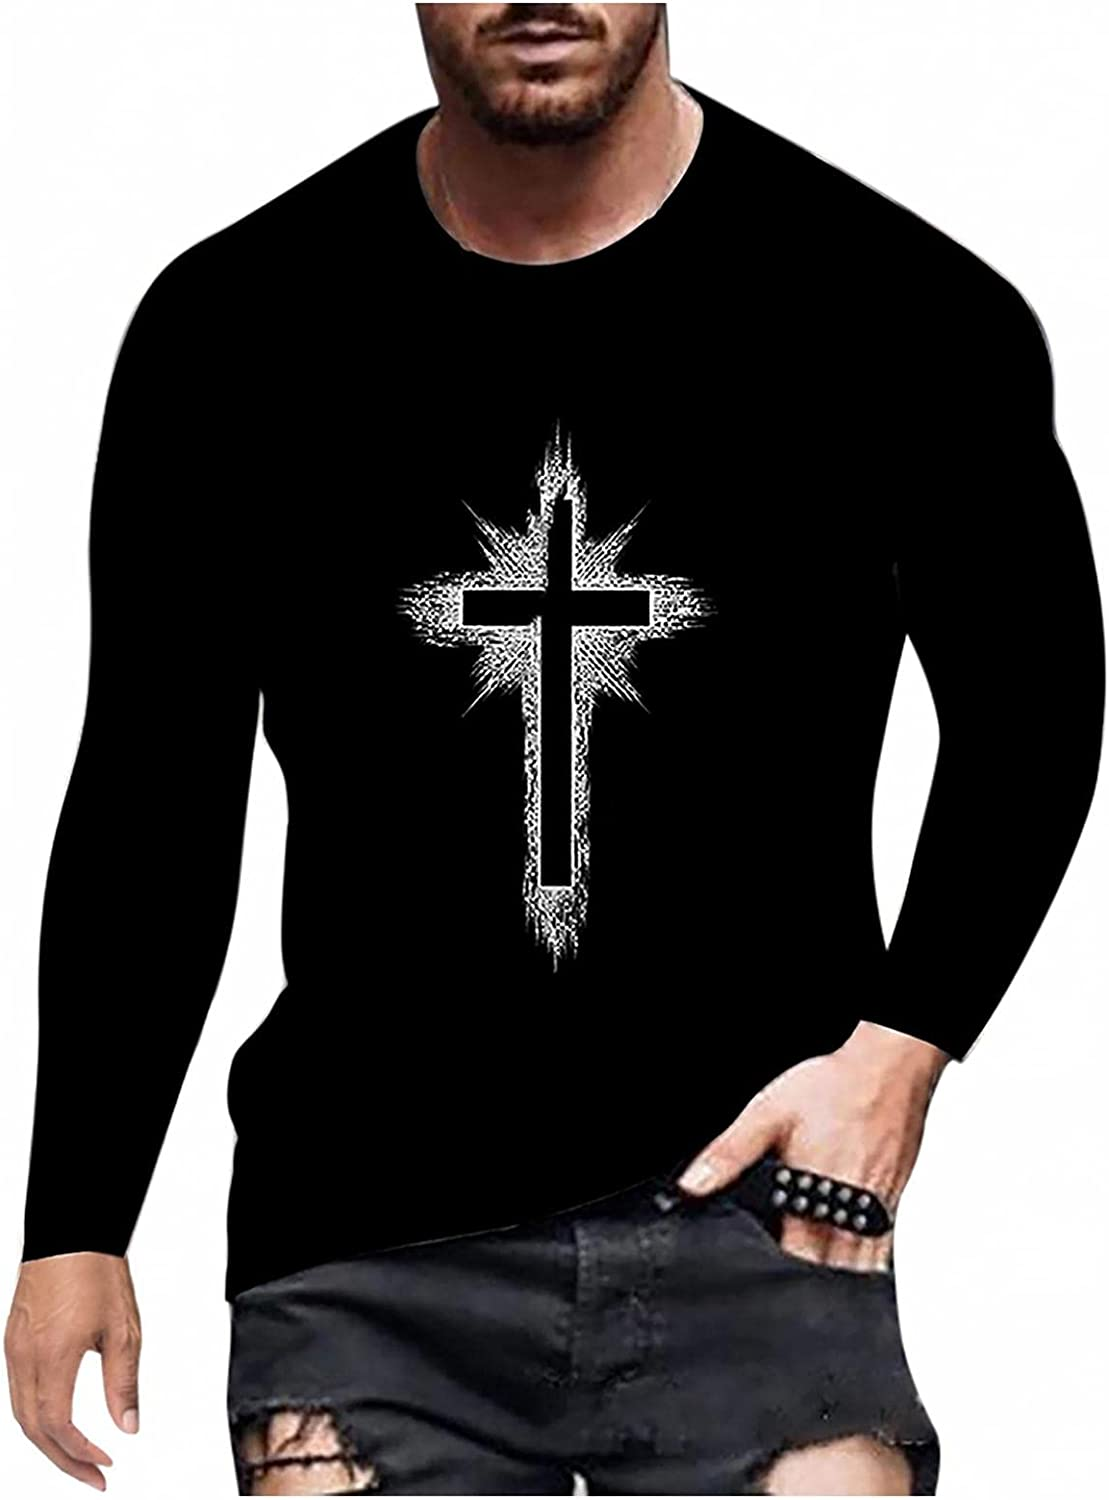 Long Sleeve Tee Shirts for Men Casual Athletic Sweatshirt Fashion Graphic Mens T Shirts Workout Sport Pullover Top